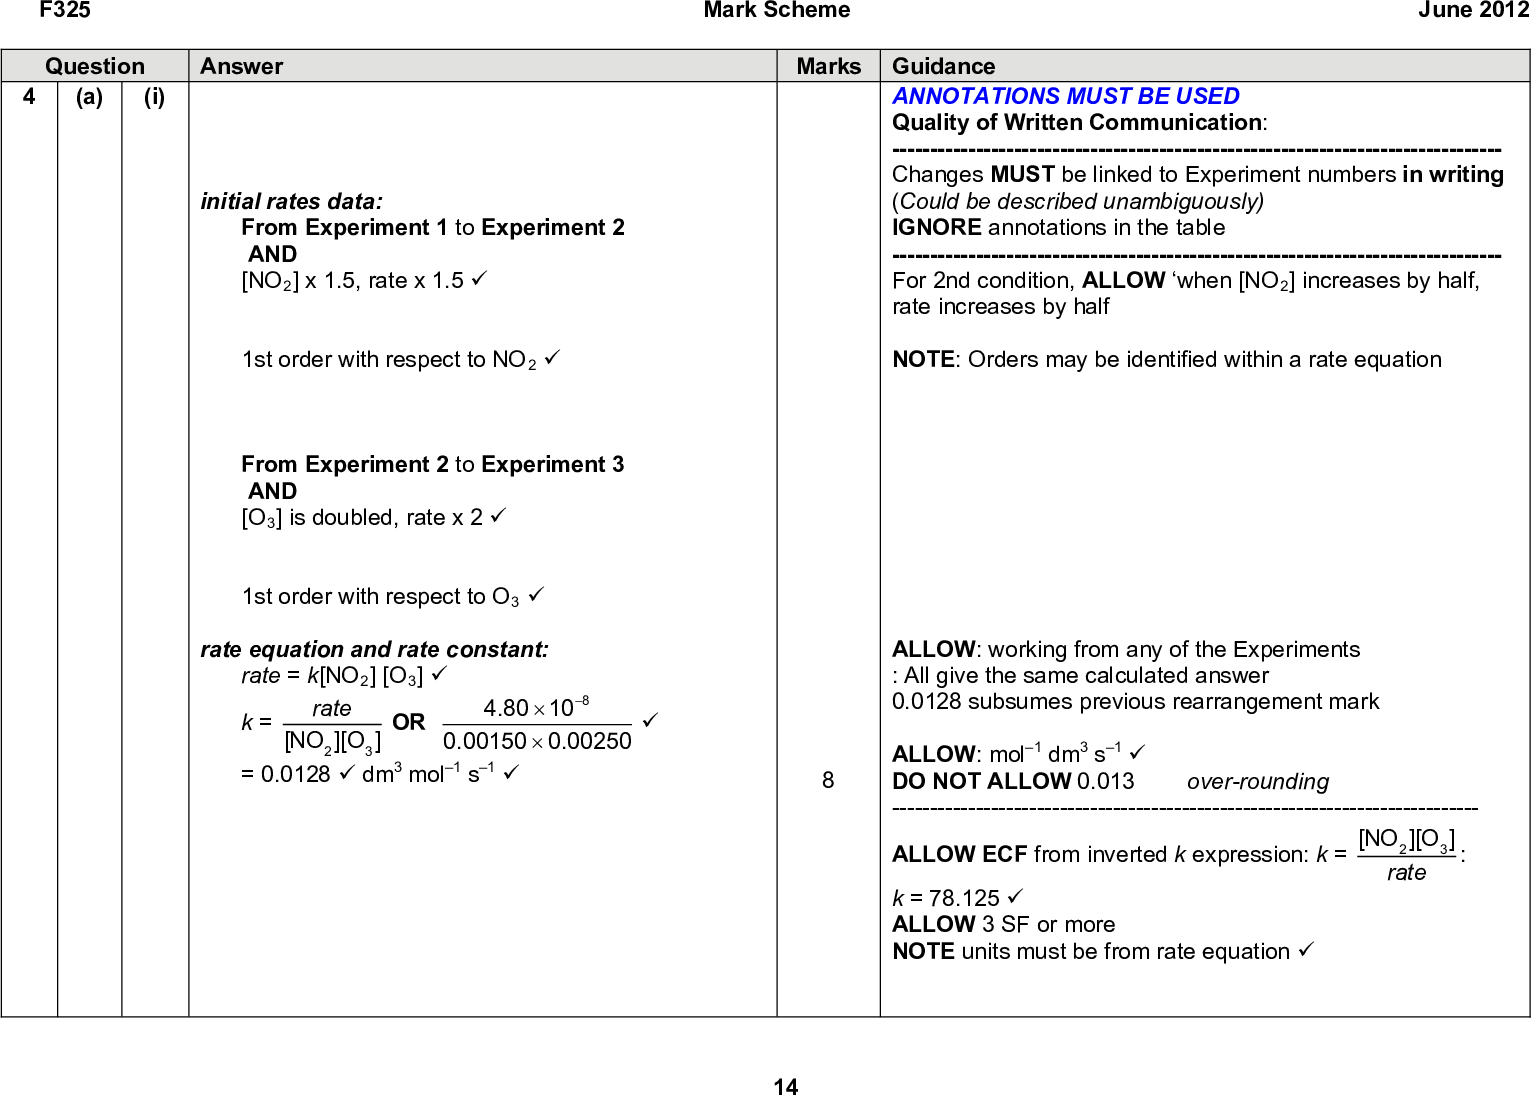 F325 Mark Scheme June 2012 Question (a) (i) Answer initial rates data: From Experiment 1 to Experiment 2 AND [NO2] x 1.5, rate x 1.5 (cid:57) 1st order with respect to NO2 (cid:57) From Experiment 2 to Experiment 3 AND [O3] is doubled, rate x 2 (cid:57) 1st order with respect to O3 (cid:57) rate equation and rate constant: rate = k[NO2] [O3] (cid:57) OR k = rate [NO2][O3] 4.80 (cid:117)10(cid:16)8 0.00150 (cid:117) 0.00250 = 0.0128 (cid:57) dm3 mol1 s1 (cid:57) Marks Guidance ANNOTATIONS MUST BE USED Quality of Written Communication: -------------------------------------------------------------------------------- Changes MUST be linked to Experiment numbers in writing (Could be described unambiguously) IGNORE annotations in the table -------------------------------------------------------------------------------- For 2nd condition, ALLOW when [NO2] increases by half, rate increases by half NOTE: Orders may be identified within a rate equation ALLOW: working from any of the Experiments : All give the same calculated answer 0.0128 subsumes previous rearrangement mark ALLOW: mol1 dm3 s1 (cid:57) DO NOT ALLOW 0.013 ----------------------------------------------------------------------------- ALLOW ECF from inverted k expression: k = : k = 78.125 (cid:57) ALLOW 3 SF or more NOTE units must be from rate equation (cid:57) 2][O3] rate over-rounding [NO (cid:57) 14<br />  F325 Mark Scheme June 2012 Question Answer (a) (ii) step 1: NO2 + O3 LHS of step one (cid:57) (cid:127)(cid:111) NO3 + O2 step 2: NO2 + NO3 (cid:127)(cid:111) N2O5 rest of equations for step 1 AND step 2 (cid:57) CHECK that each equation is balanced CARE: Step 1 AND Step 2 must add up to give overall equation In Step 2, IGNORE extra species shown on both sides, e.g. NO2 + NO3 + O2 (cid:127)(cid:111) N2 Step 2 can only gain a mark when Step 1 is correct 3 gaseous moles (cid:127)(cid:111) 2 gaseous moles (cid:57) Less randomness OR becomes more ordered (cid:57) 5 + O2 (i) (ii) FIRST, CHECK THE ANSWER ON ANSWE